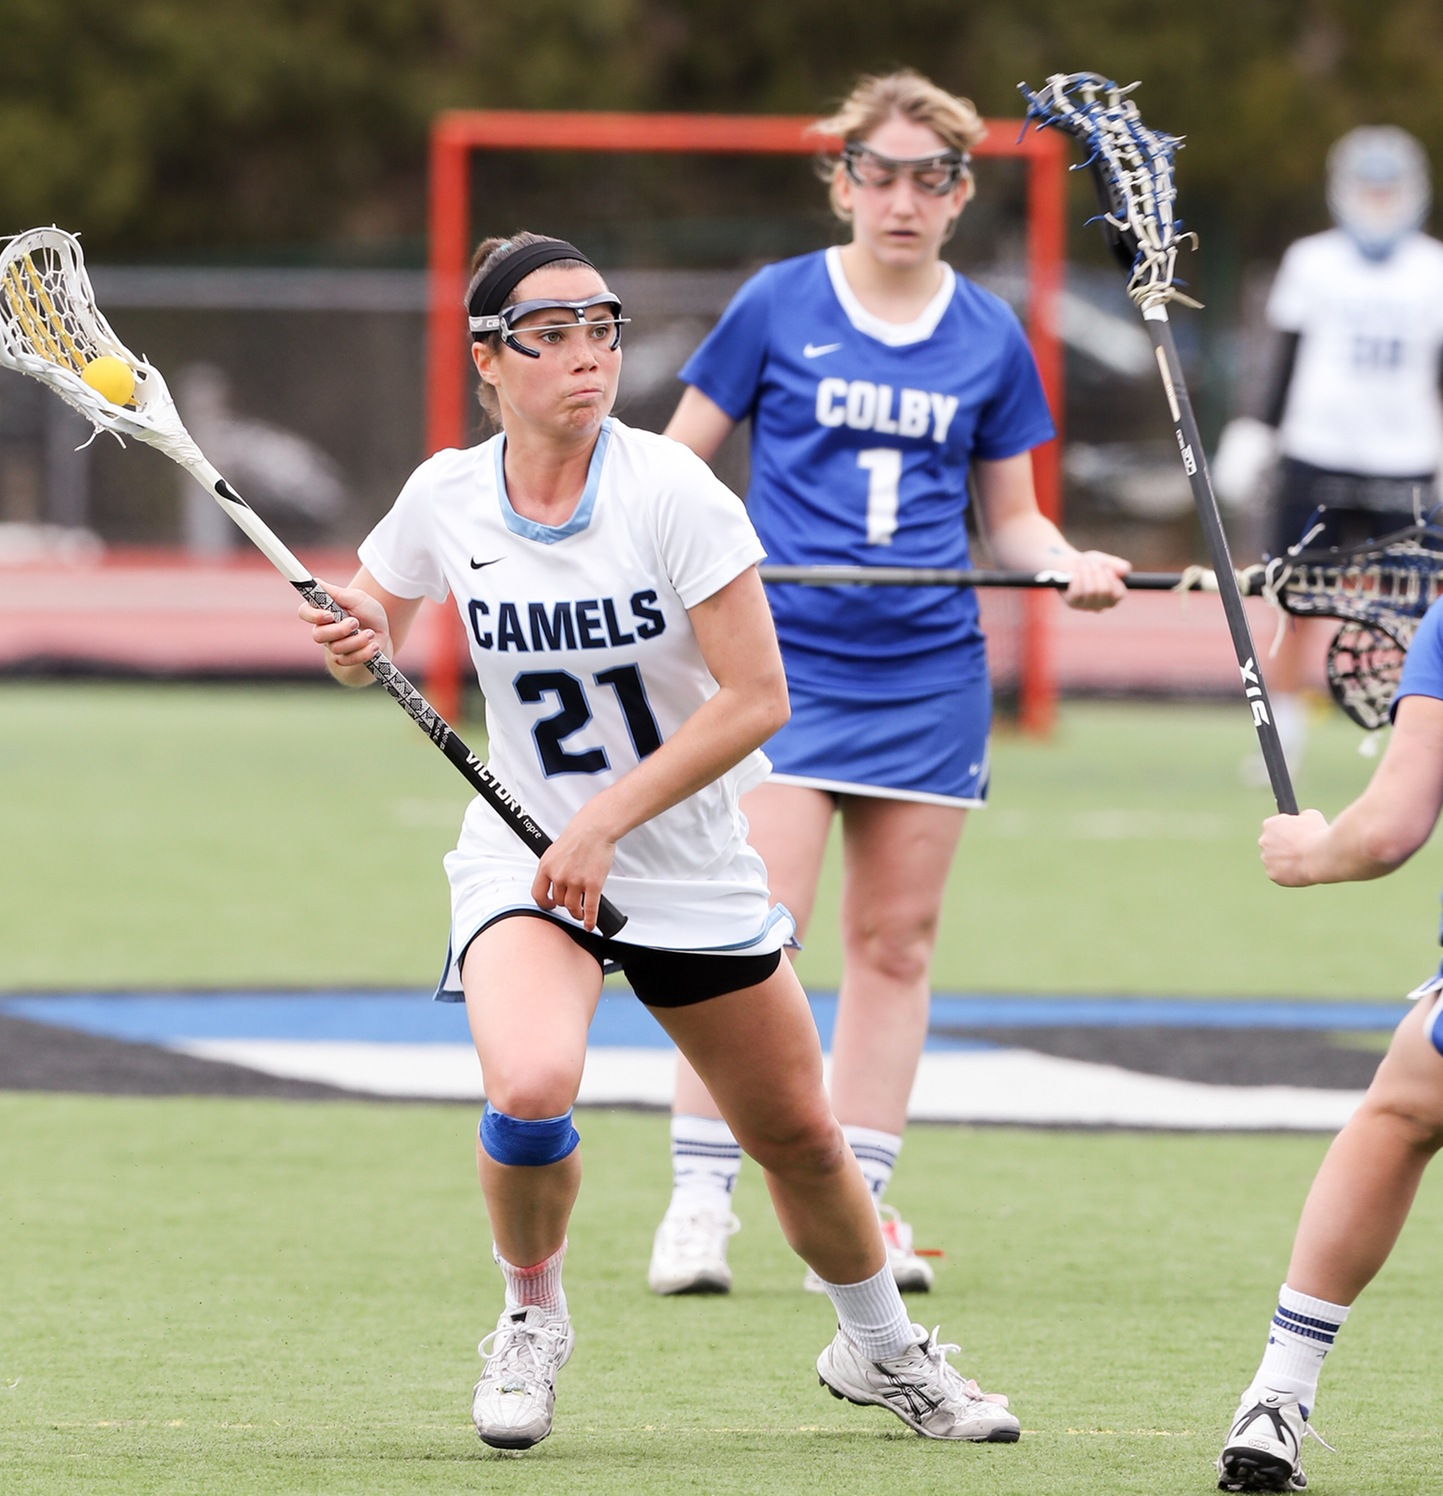 Connecticut College 19 Mount Holyoke 4 Donegan Delivers with 100th Career Point to Lead Camels in Offensive Uprising